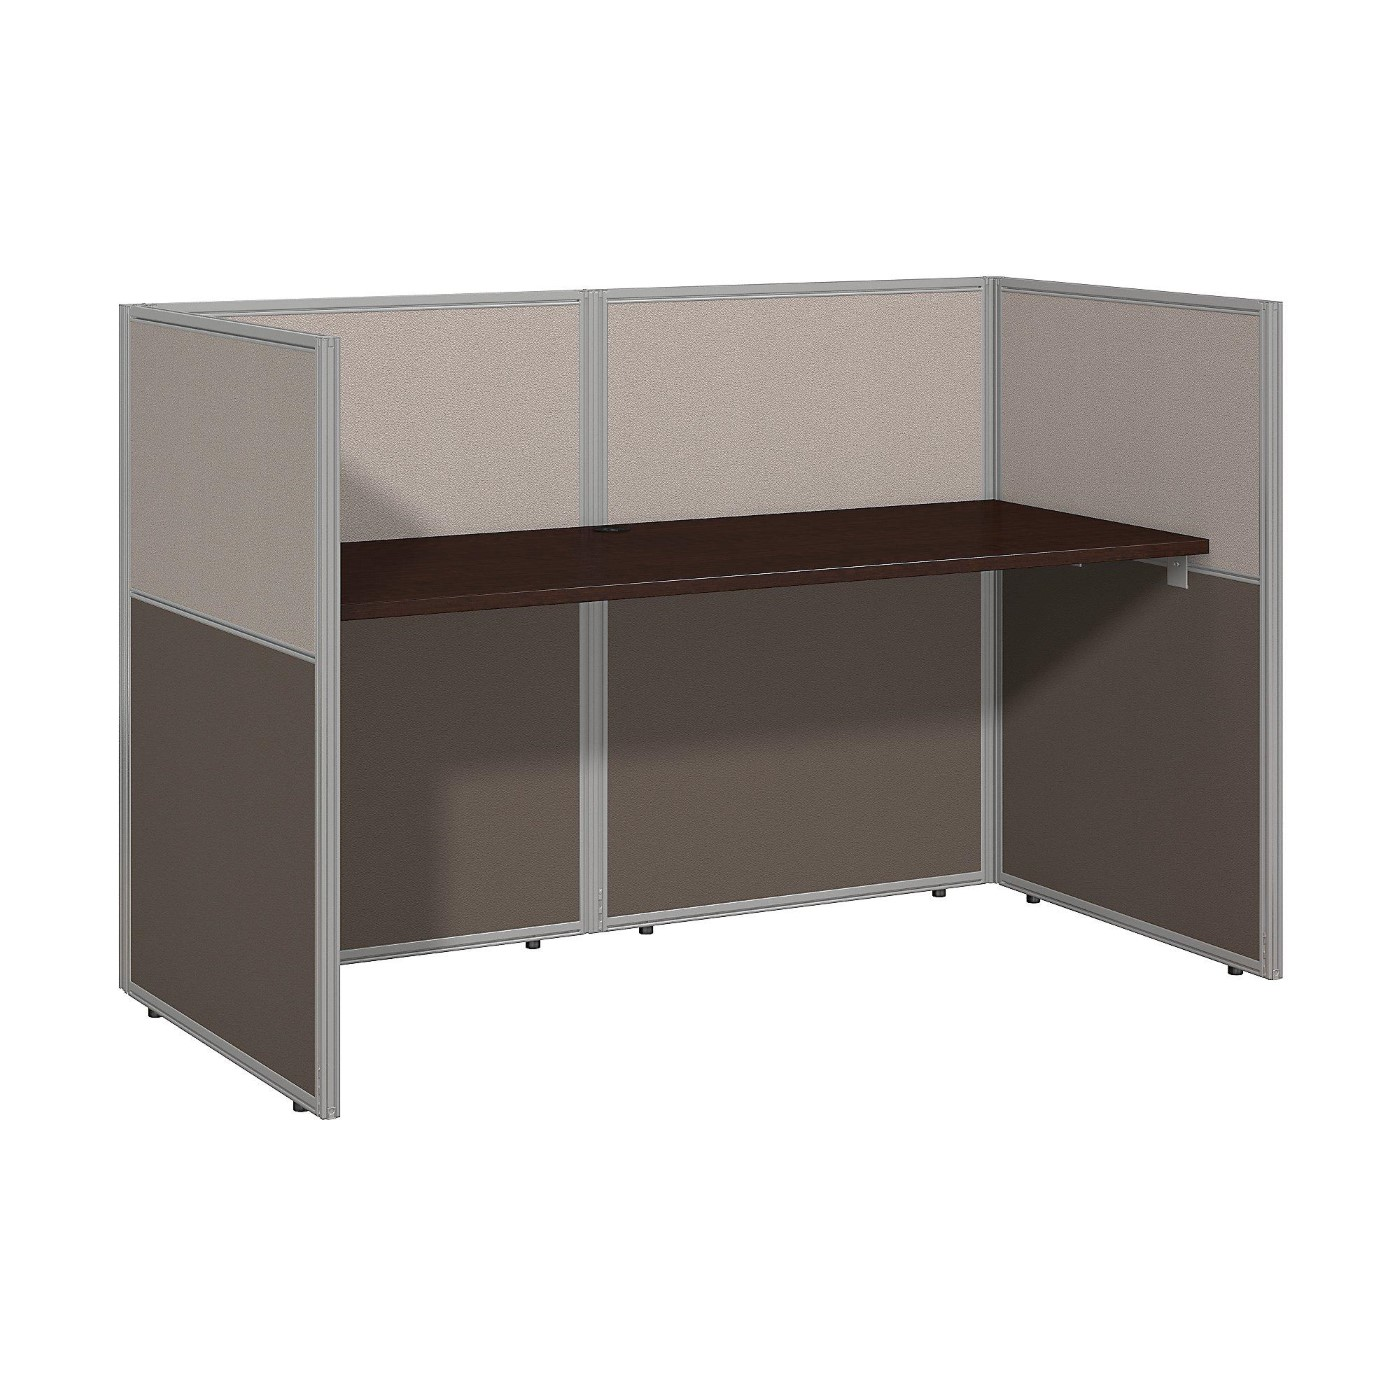 BUSH BUSINESS FURNITURE EASY OFFICE 60W STRAIGHT DESK CLOSED OFFICE. FREE SHIPPING  VIDEO BELOW.  SALE DEDUCT 10% MORE ENTER '10percent' IN COUPON CODE BOX WHILE CHECKING OUT. ENDS 5-31-20.